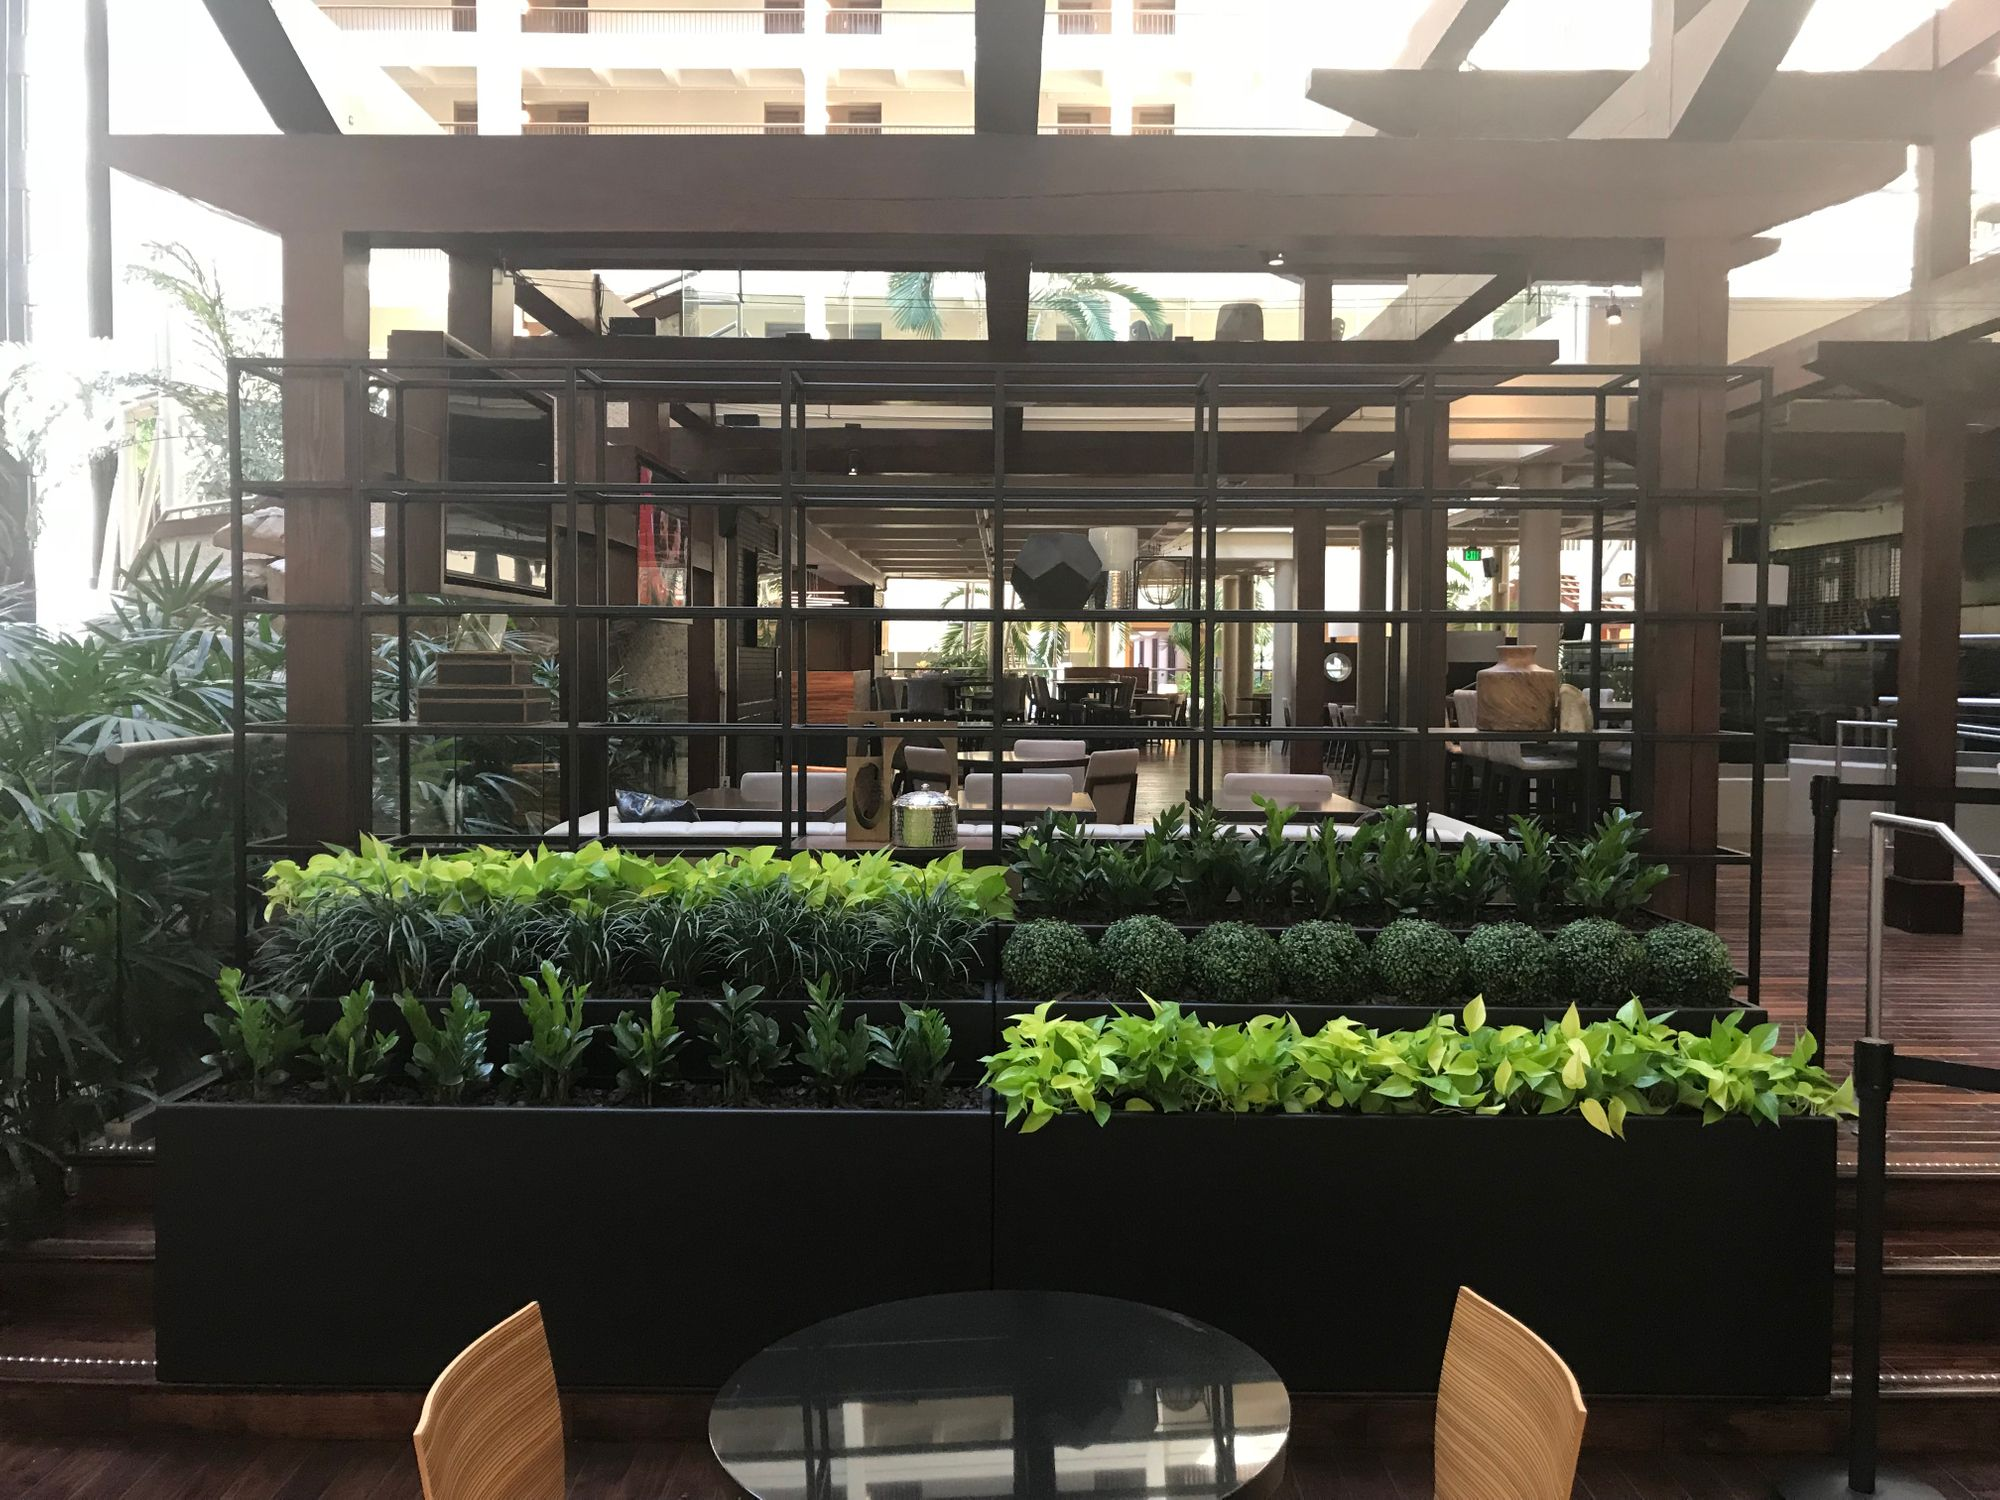 Commercial Planter Dividers In 2020 Indoor Planters Plants Planters